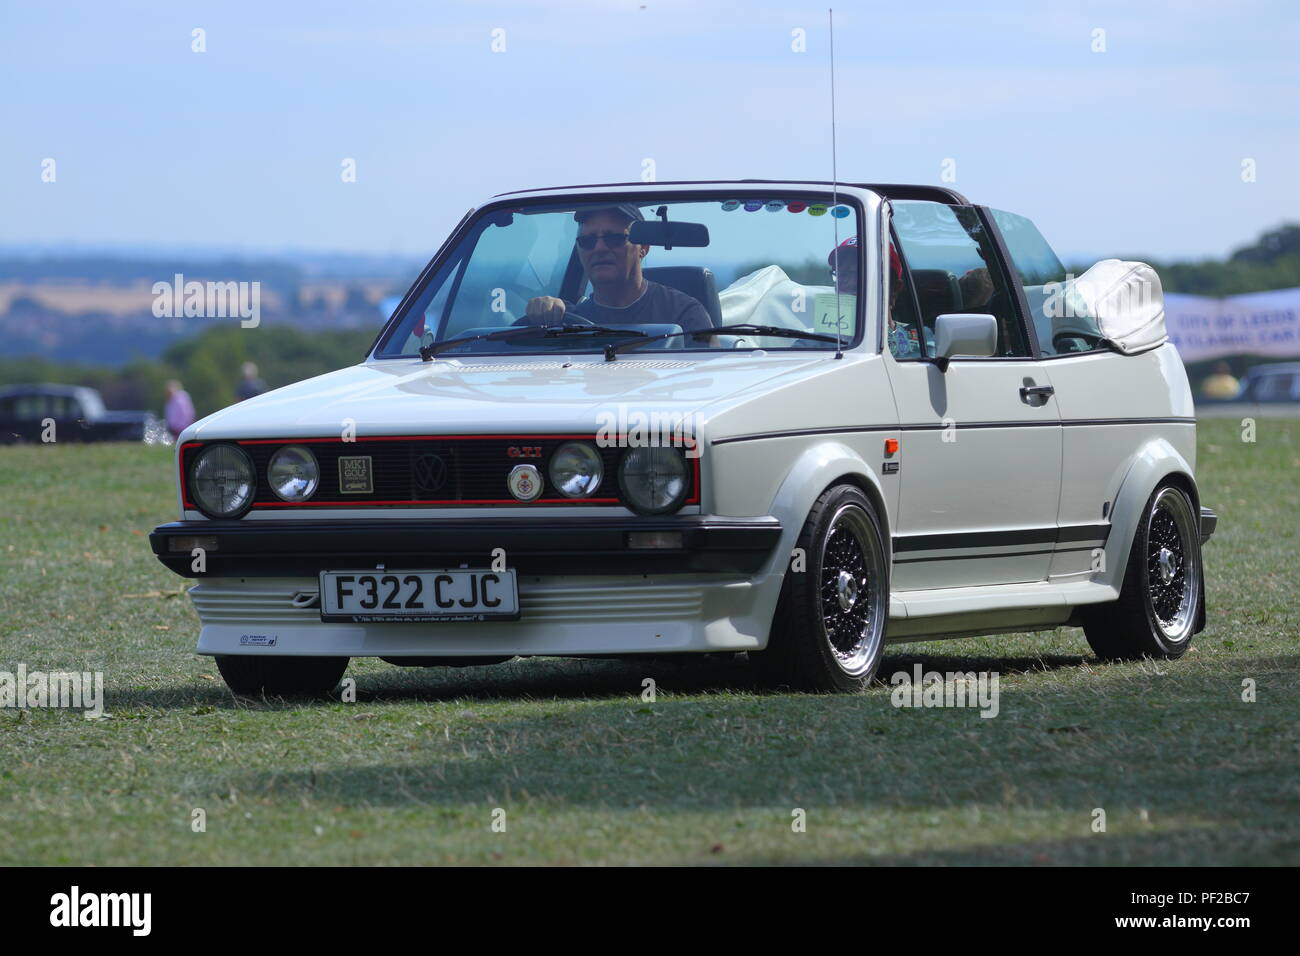 A 1988 Volkswagen Golf GTI MK1 in White , leaving a Classic Car Show at Temple Newsam in Leeds - Stock Image